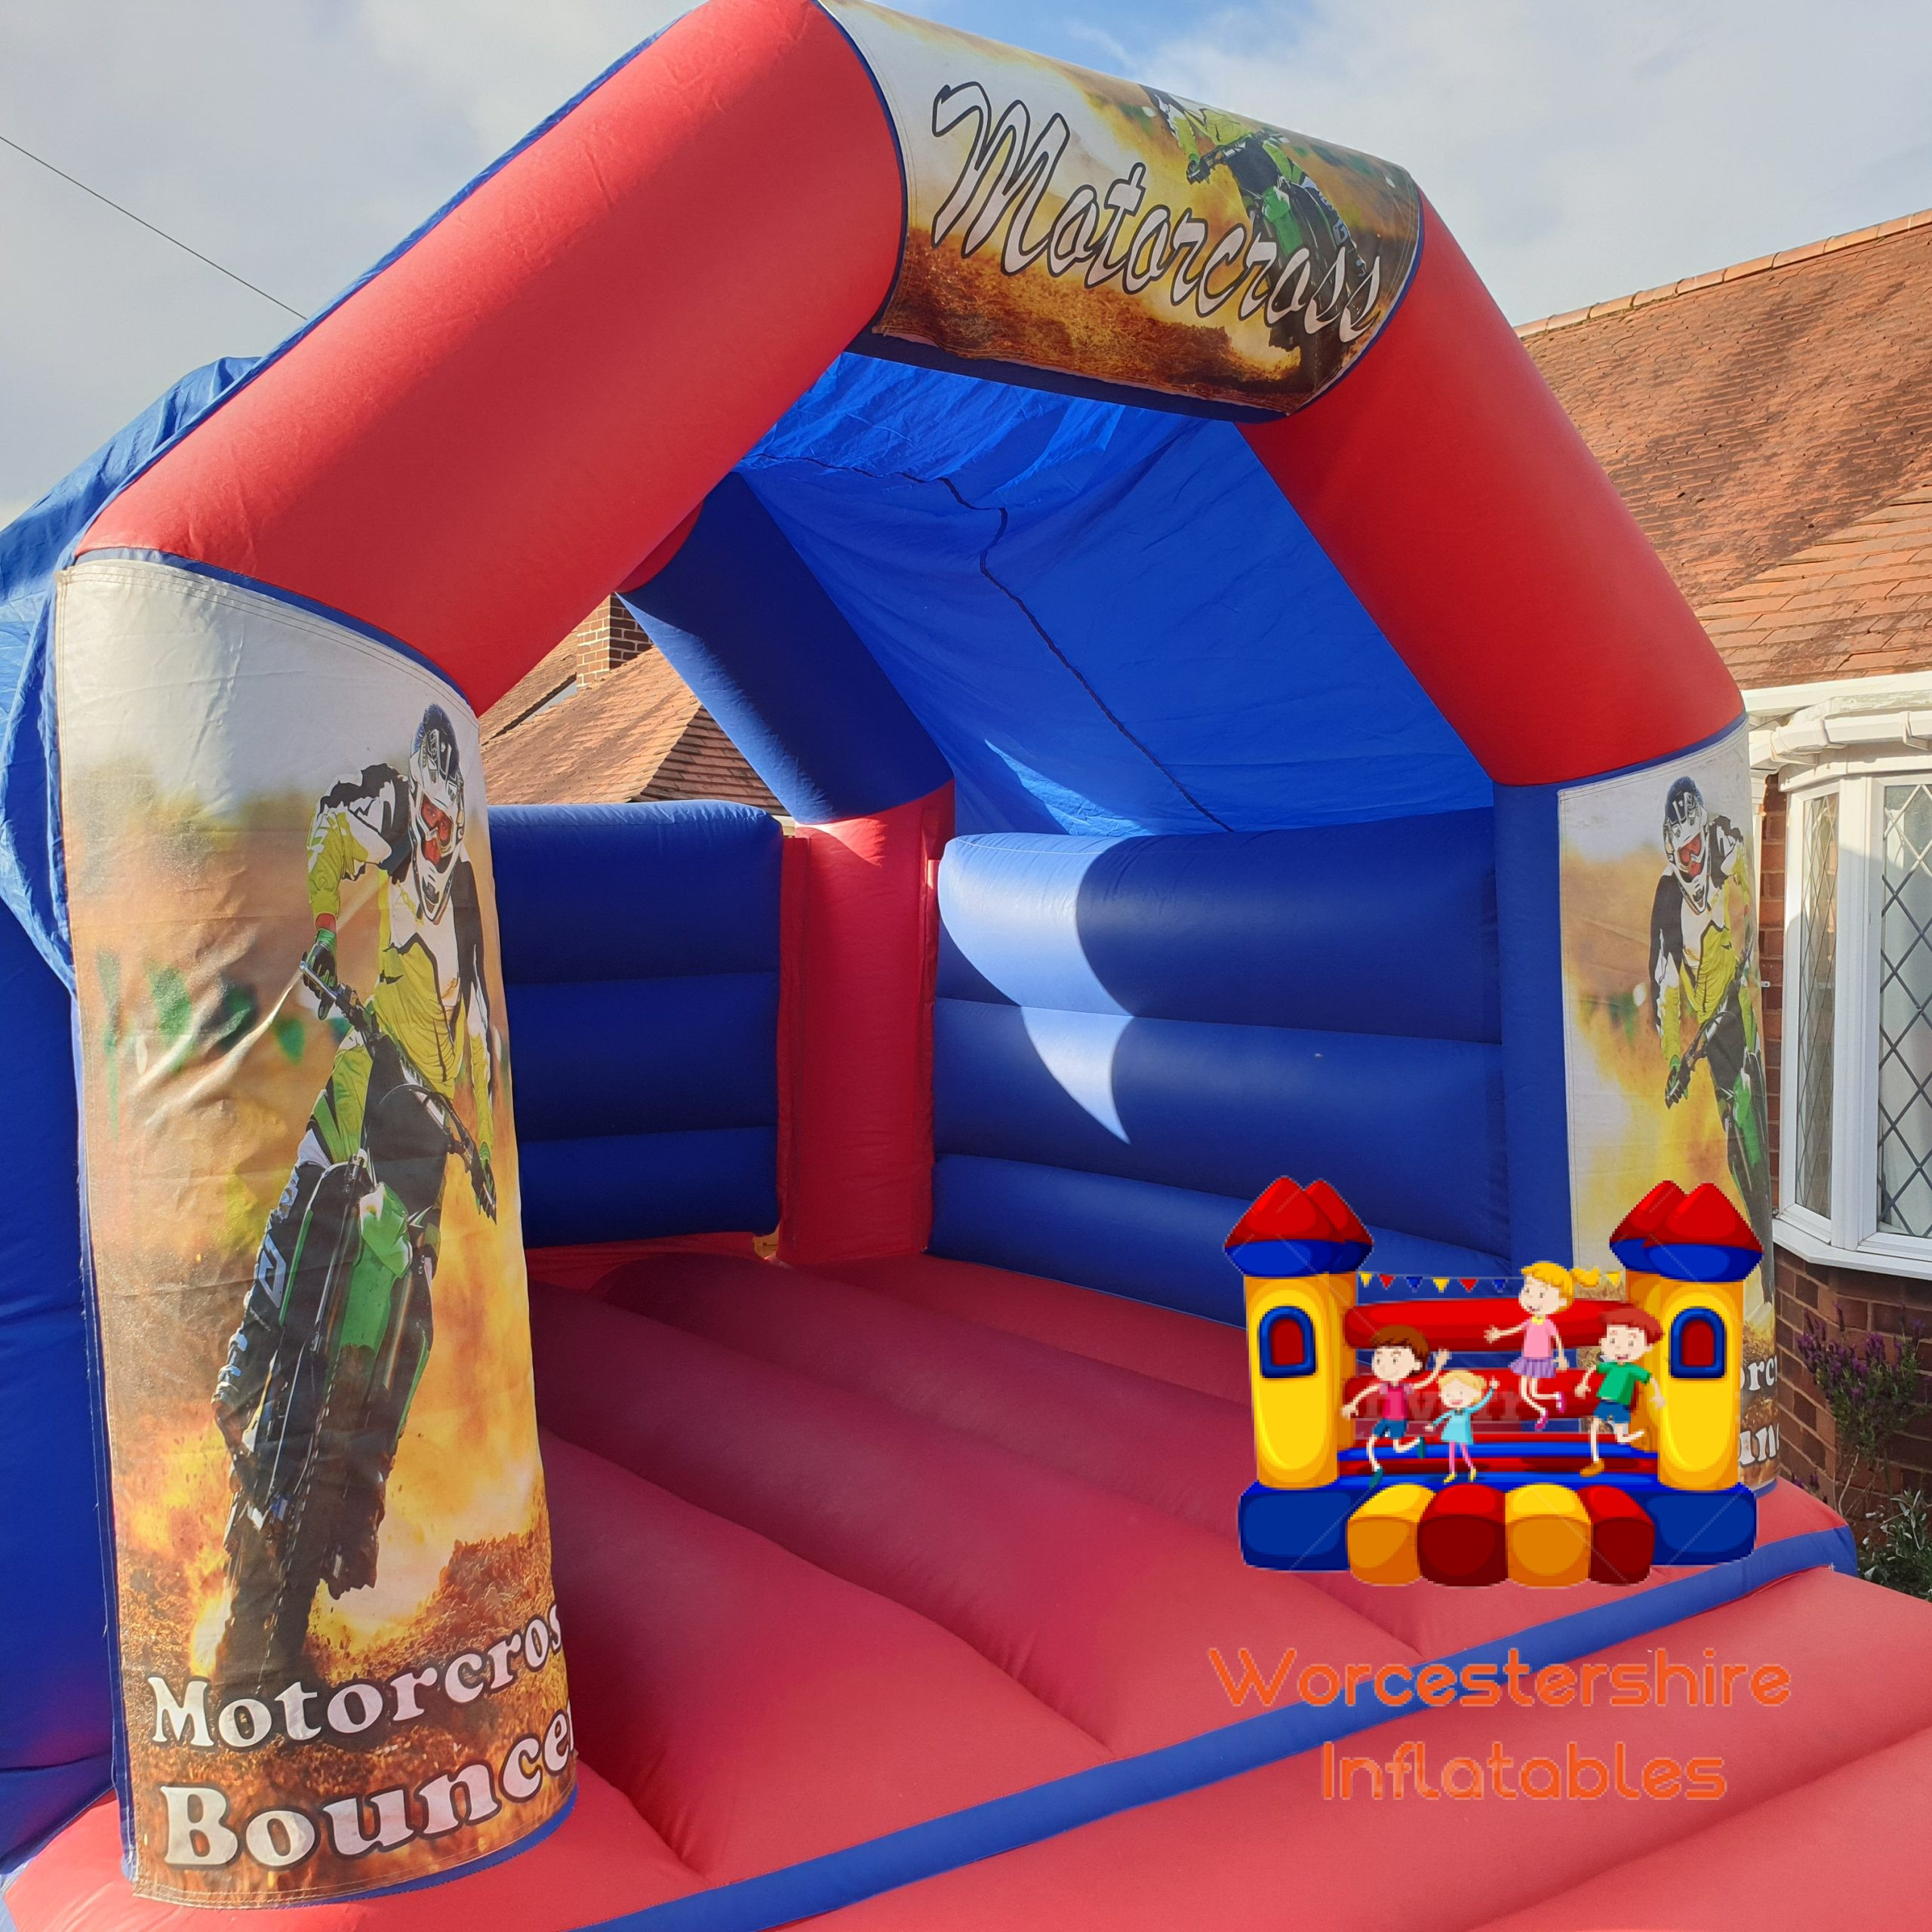 themed bouncy castle - Worcestershire Inflatables